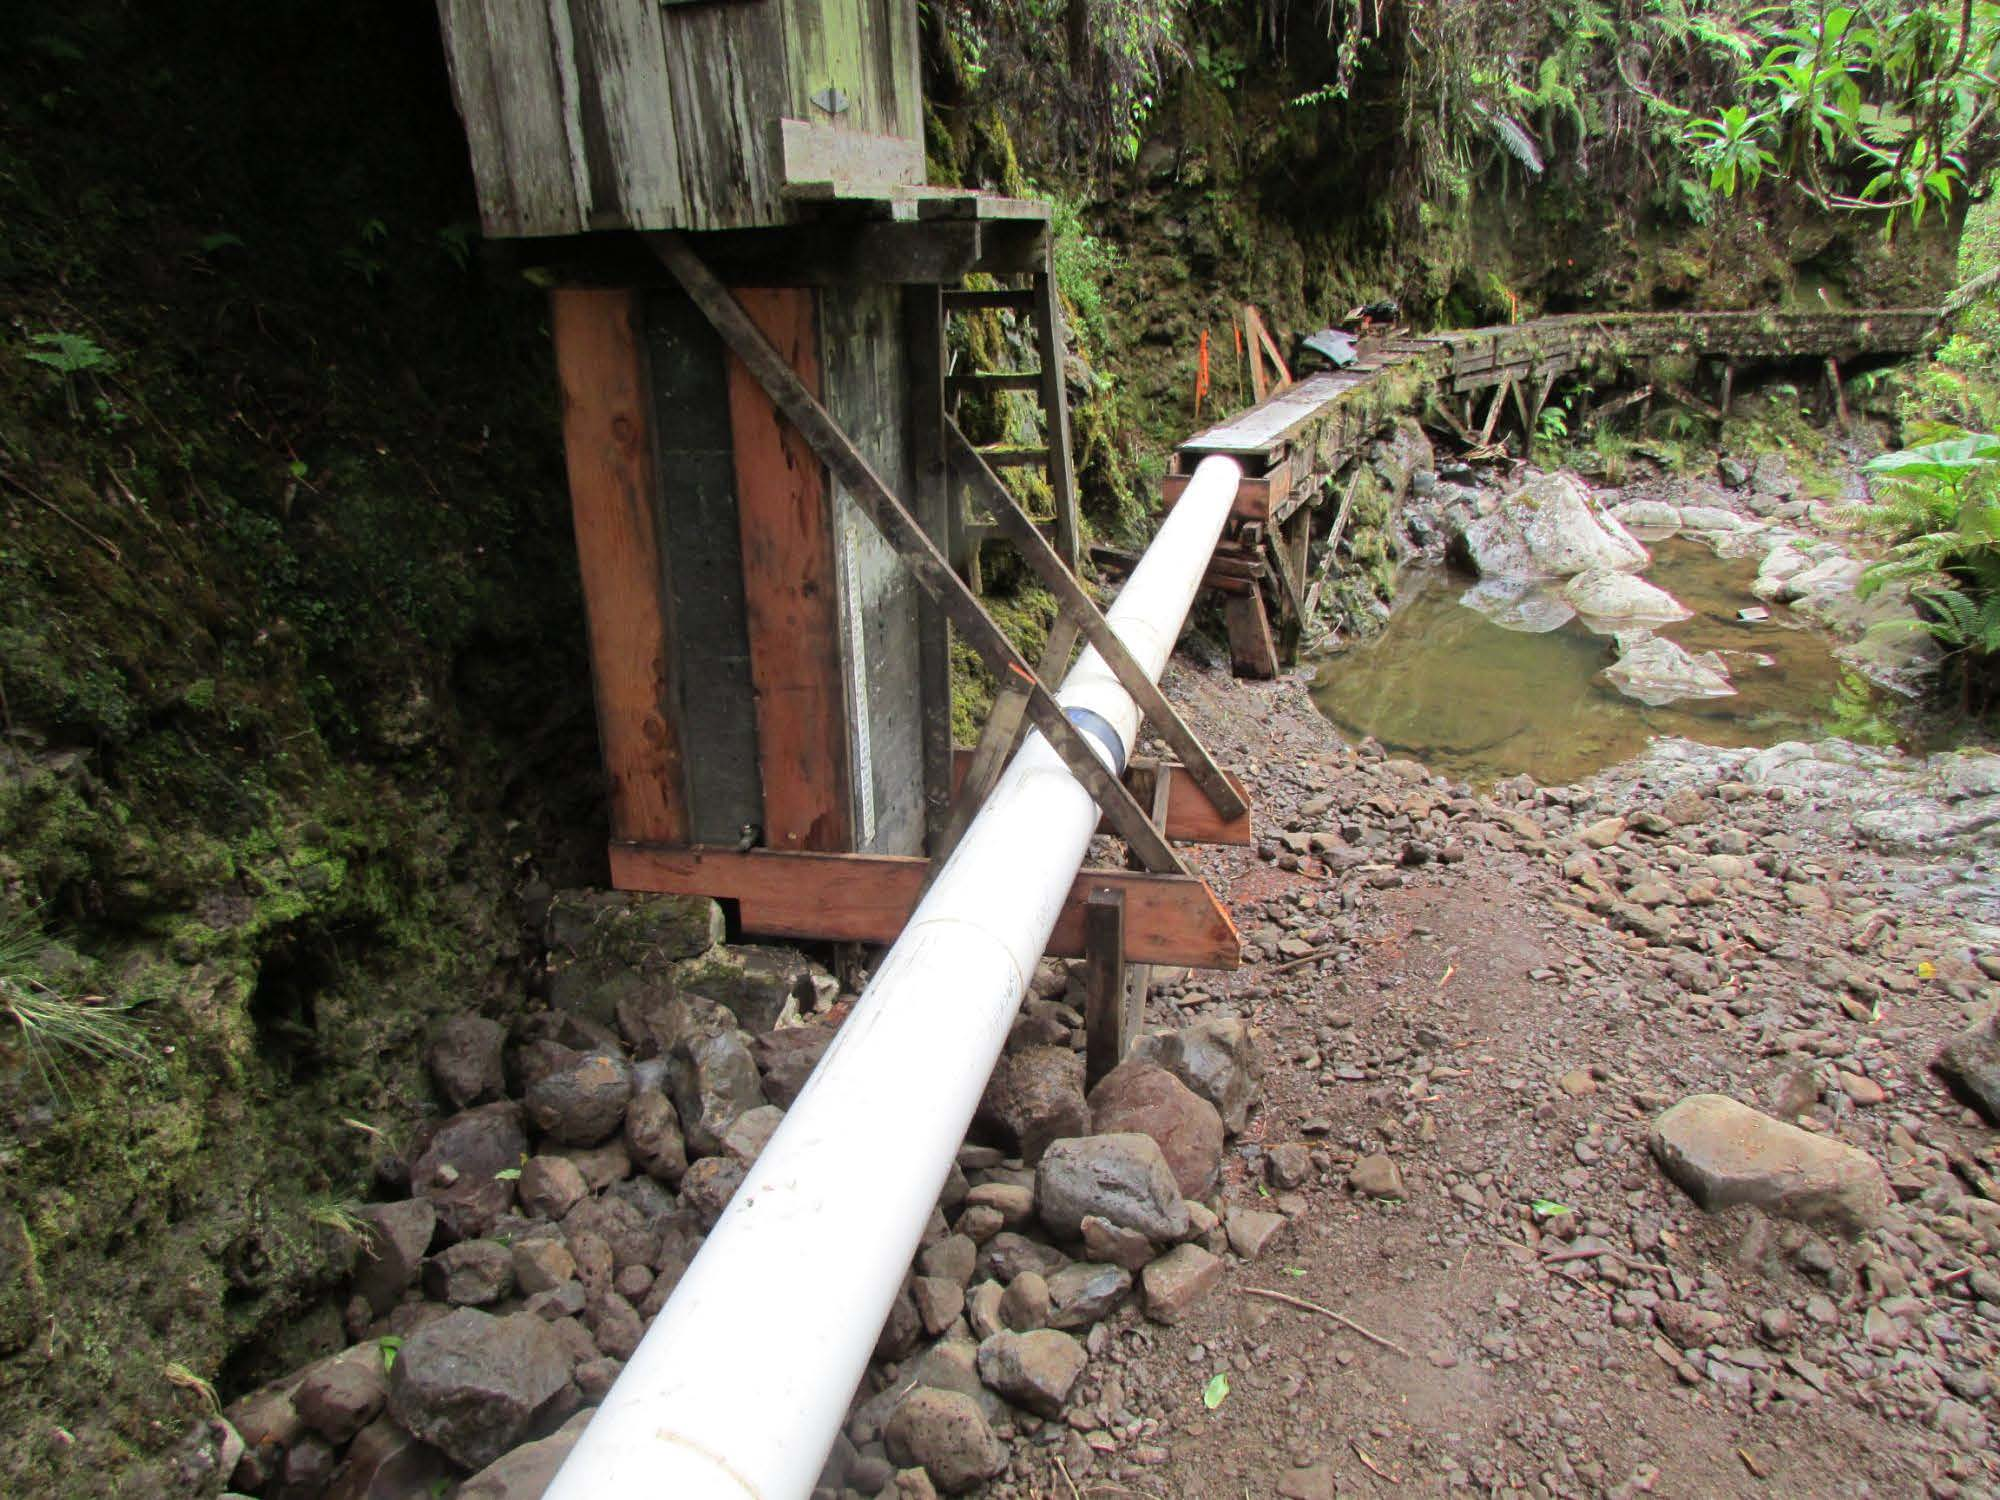 Before-and-after photos of the Waikamoi flume renovation